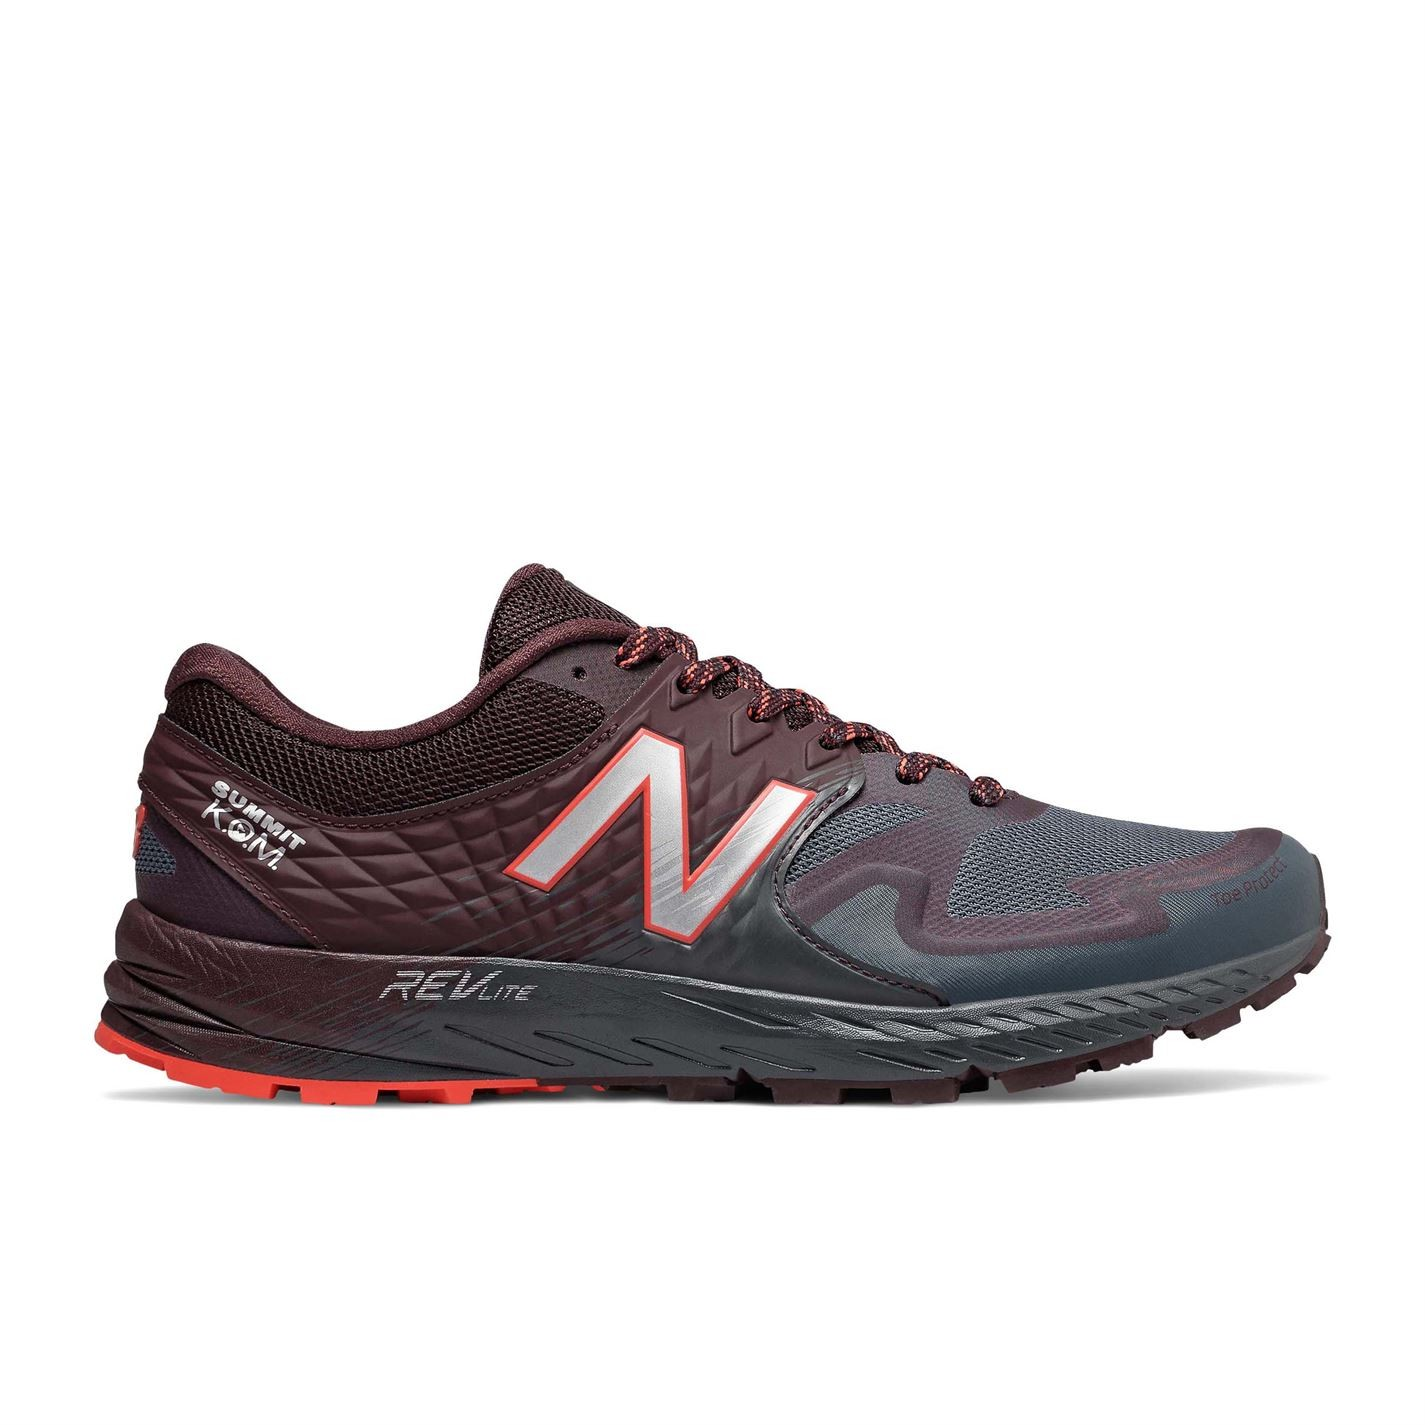 Zapatillas de Trail New Balance Summit KOM Marrón Gris OI19